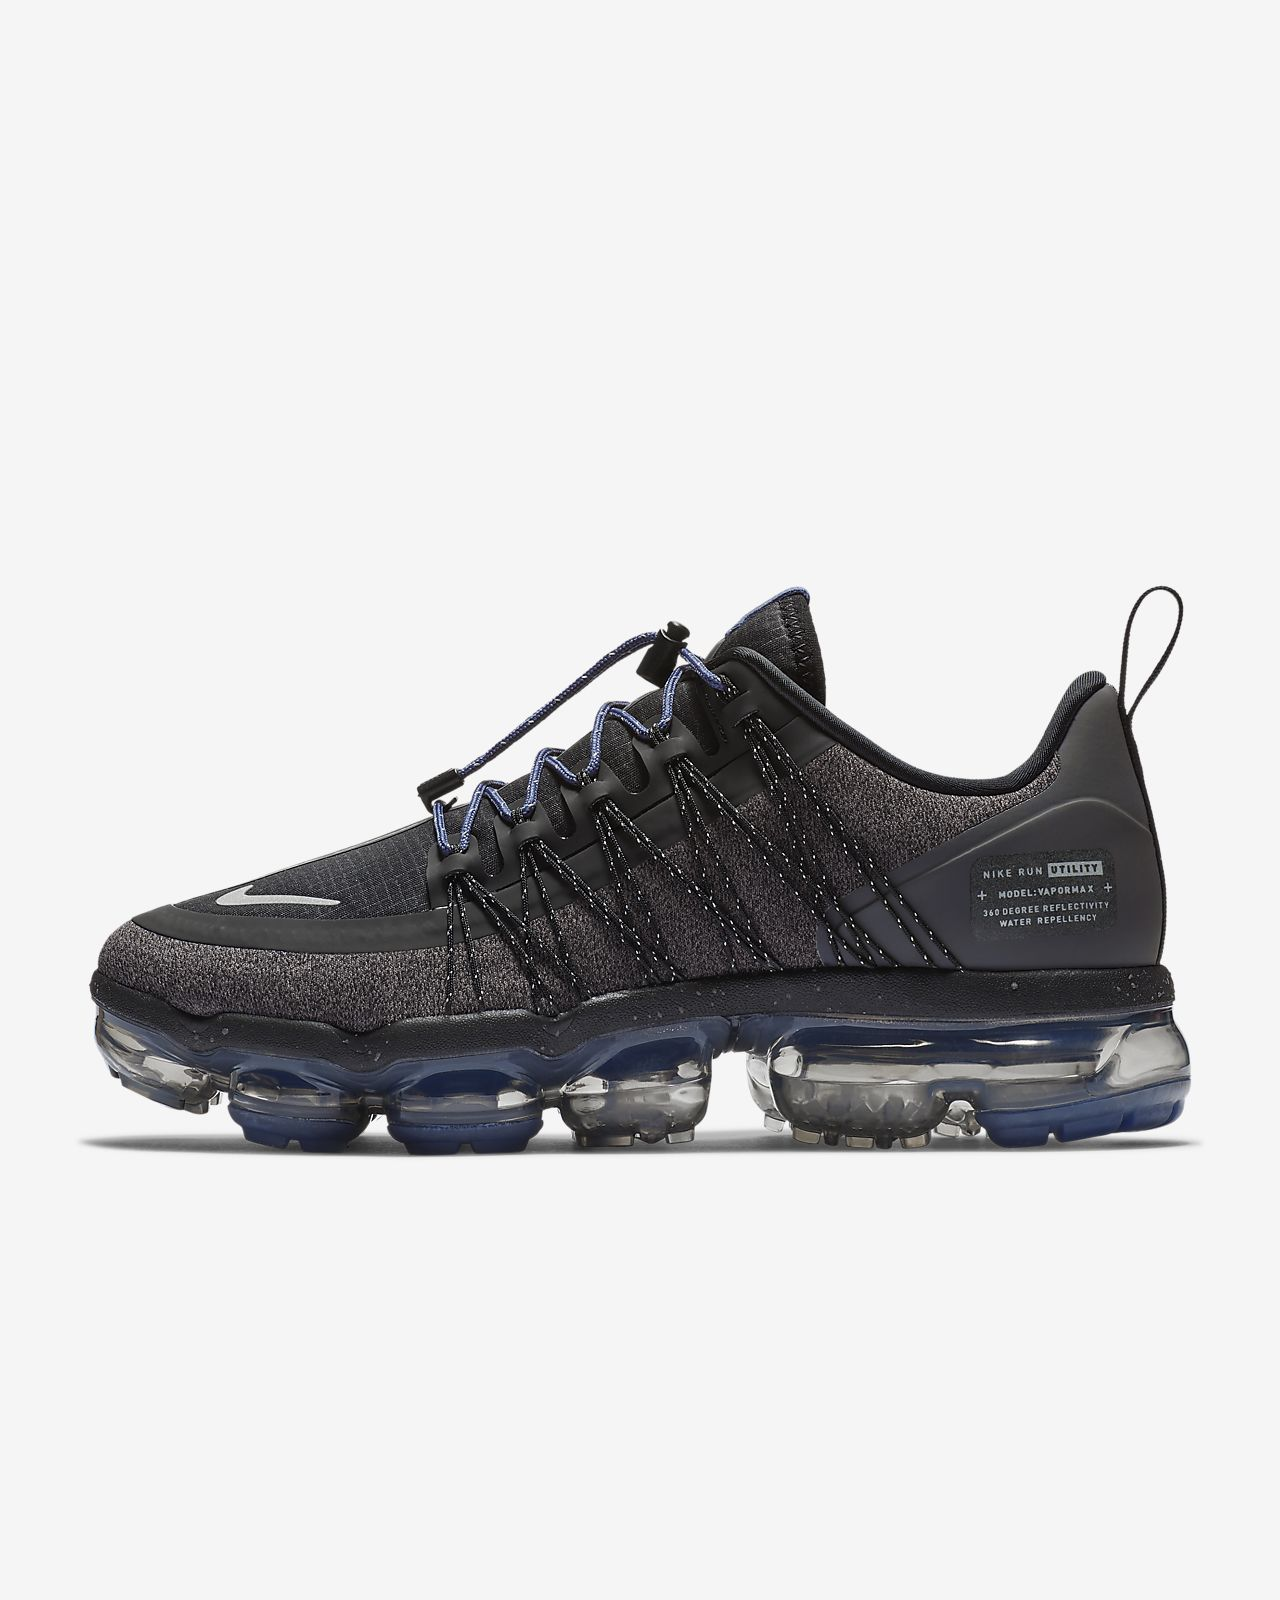 new arrival afc65 0ee19 ... Nike Air VaporMax Utility Women s Shoe